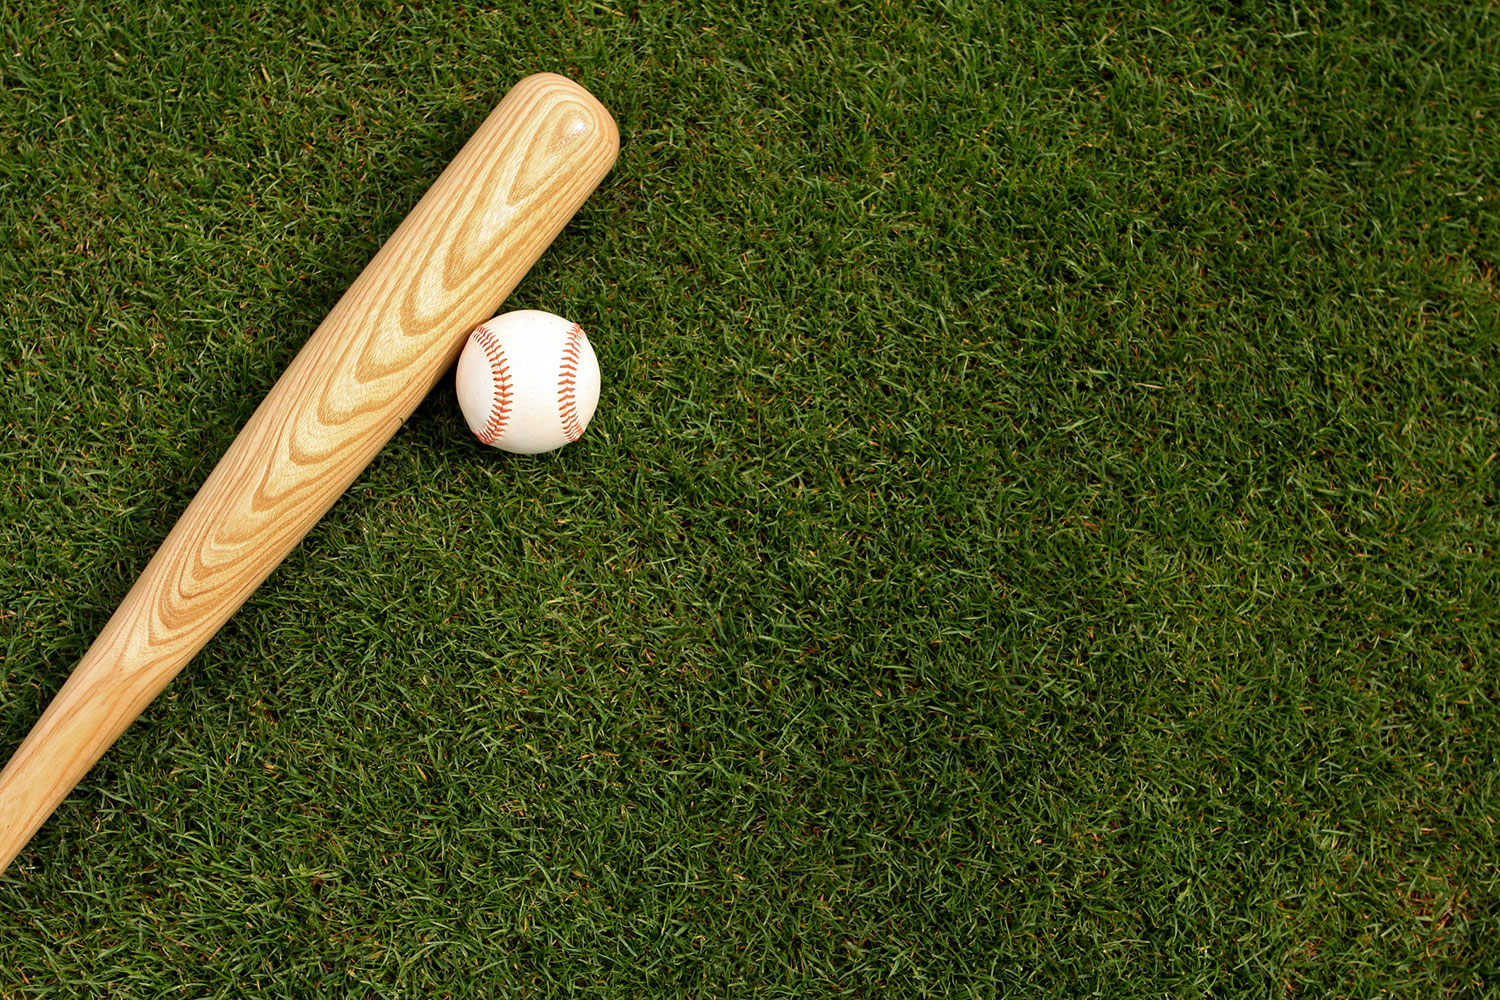 Baseball-and-Bat-on-the-Grass